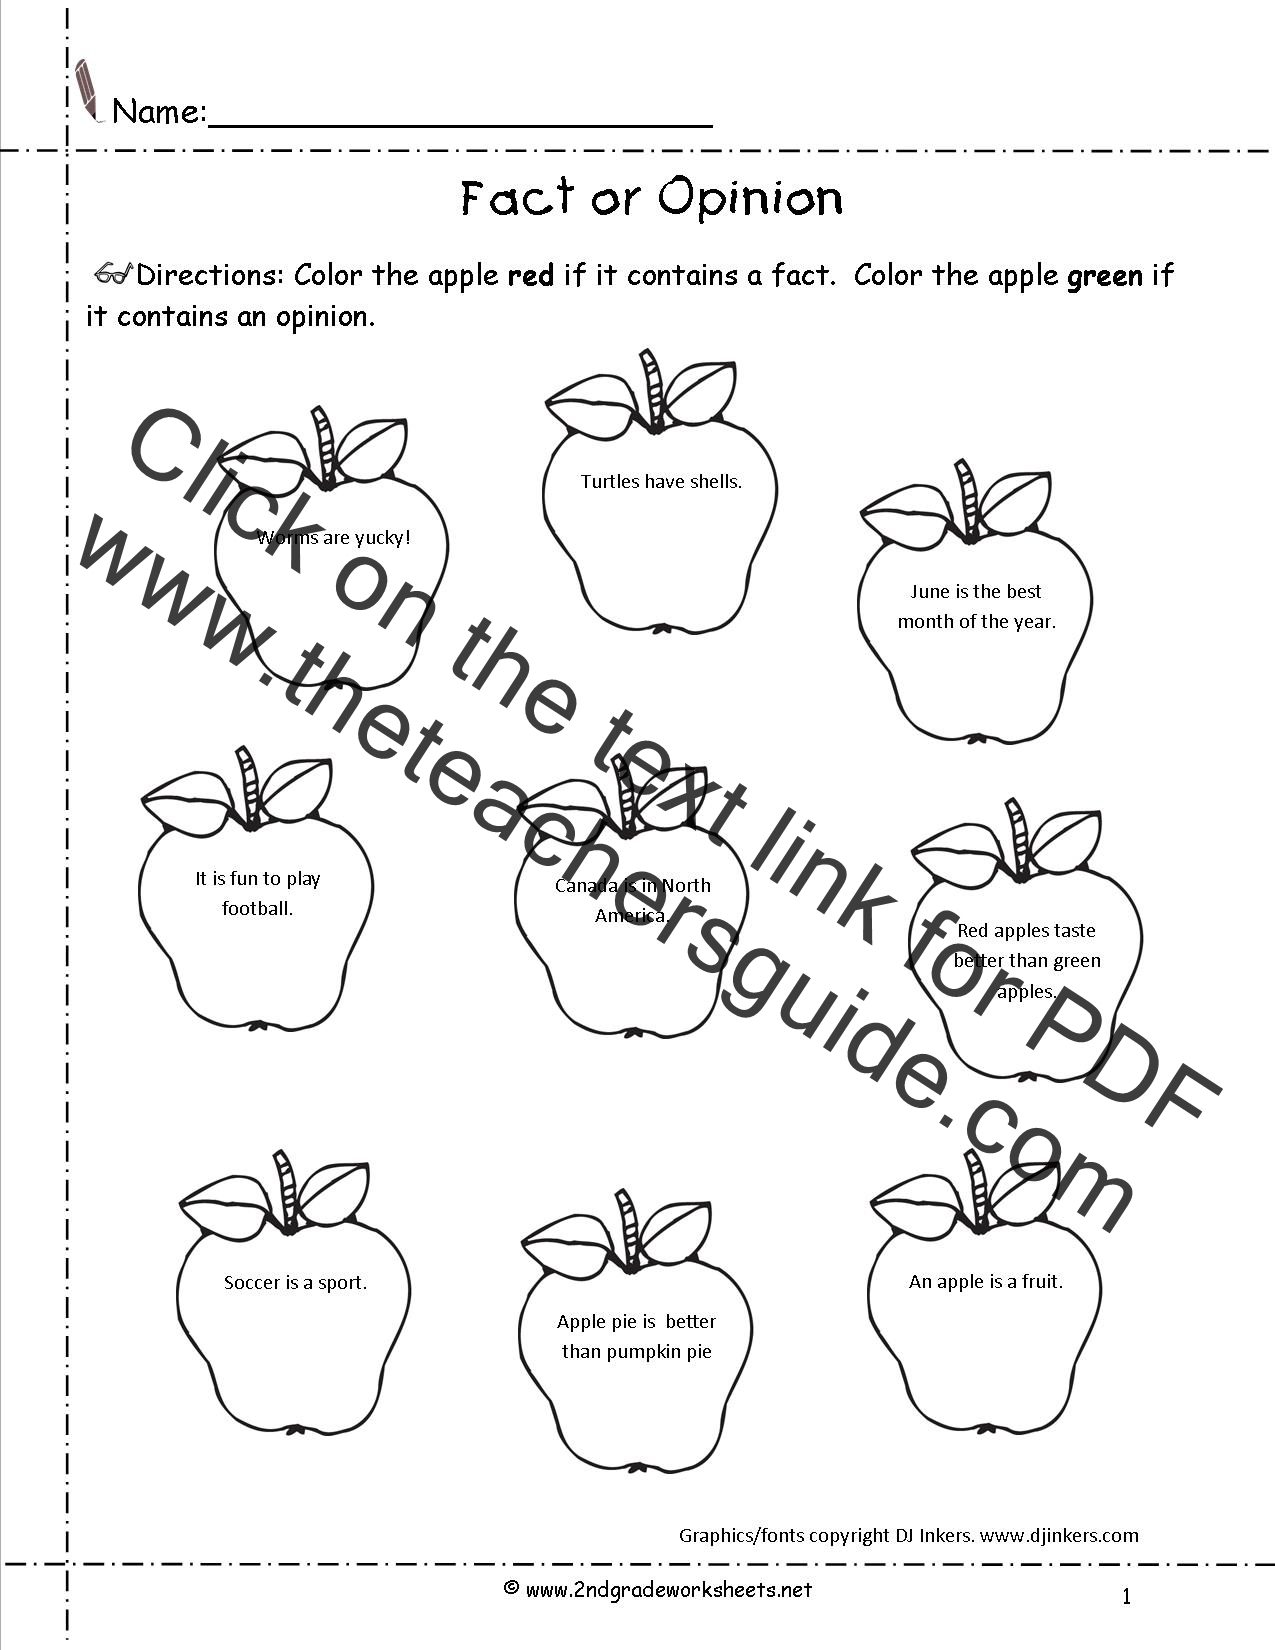 worksheet Common Core Writing Worksheets ccss ela literacy w 2 1 worksheets fact or opinion worksheet common core